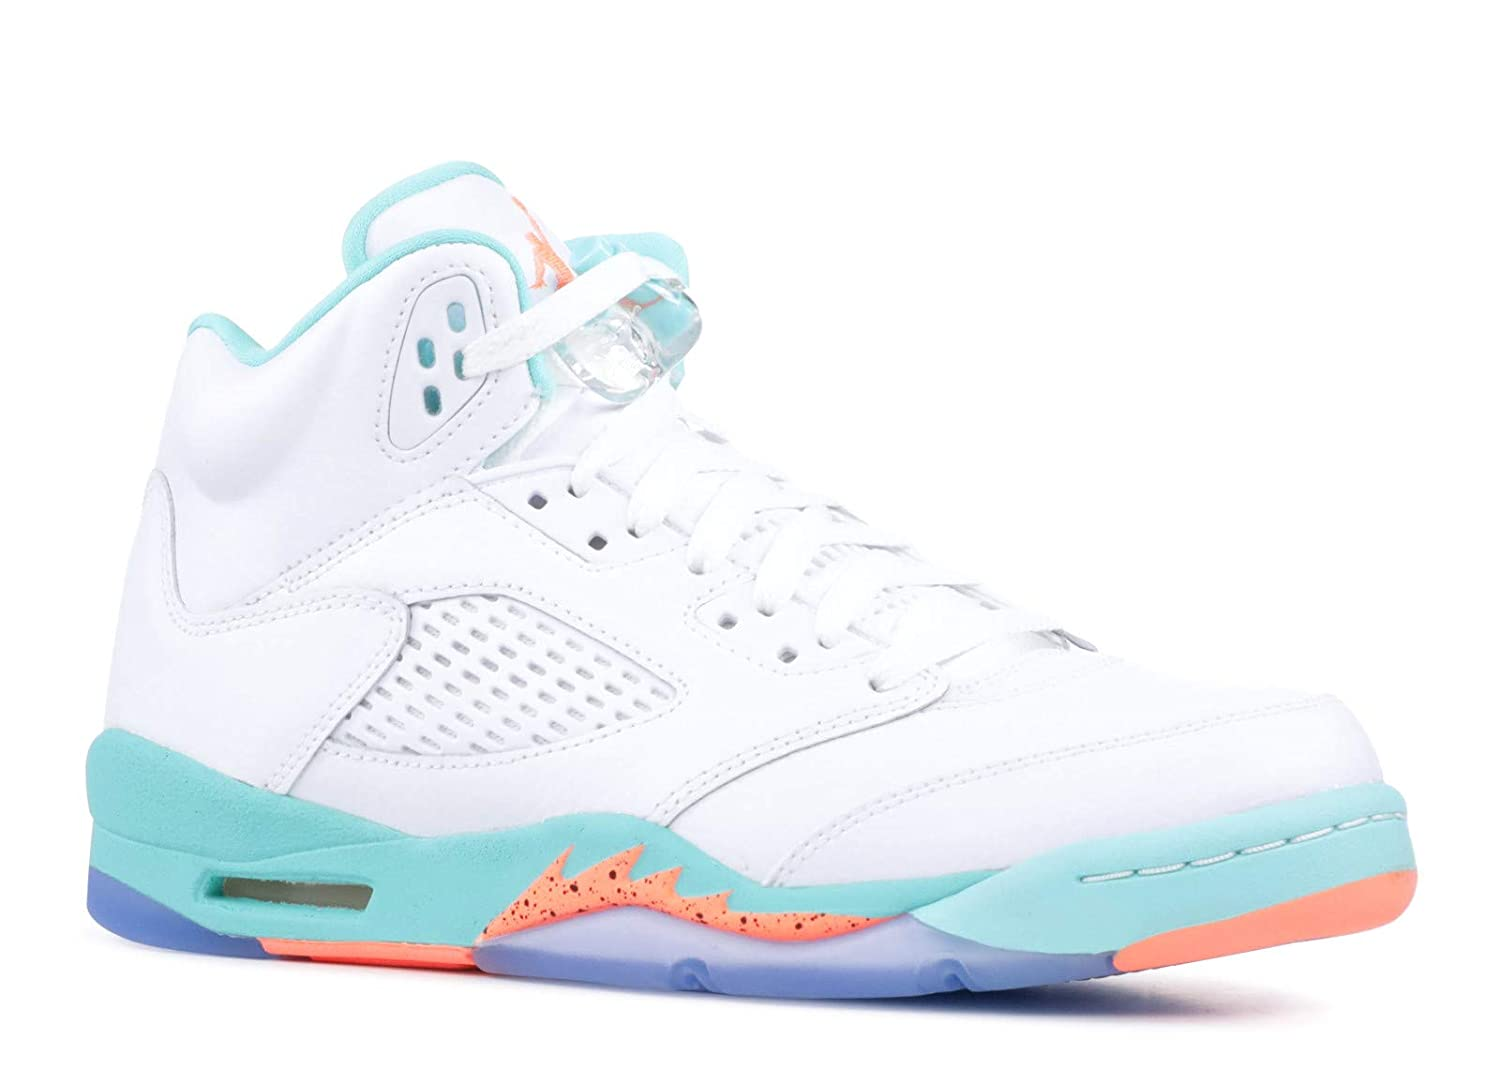 huge discount 9bf93 8ddac Amazon.com   Nike Air Jordan 5 Retro Kids GS White Crimson Pulse-Light Aqua  440892-100   Basketball